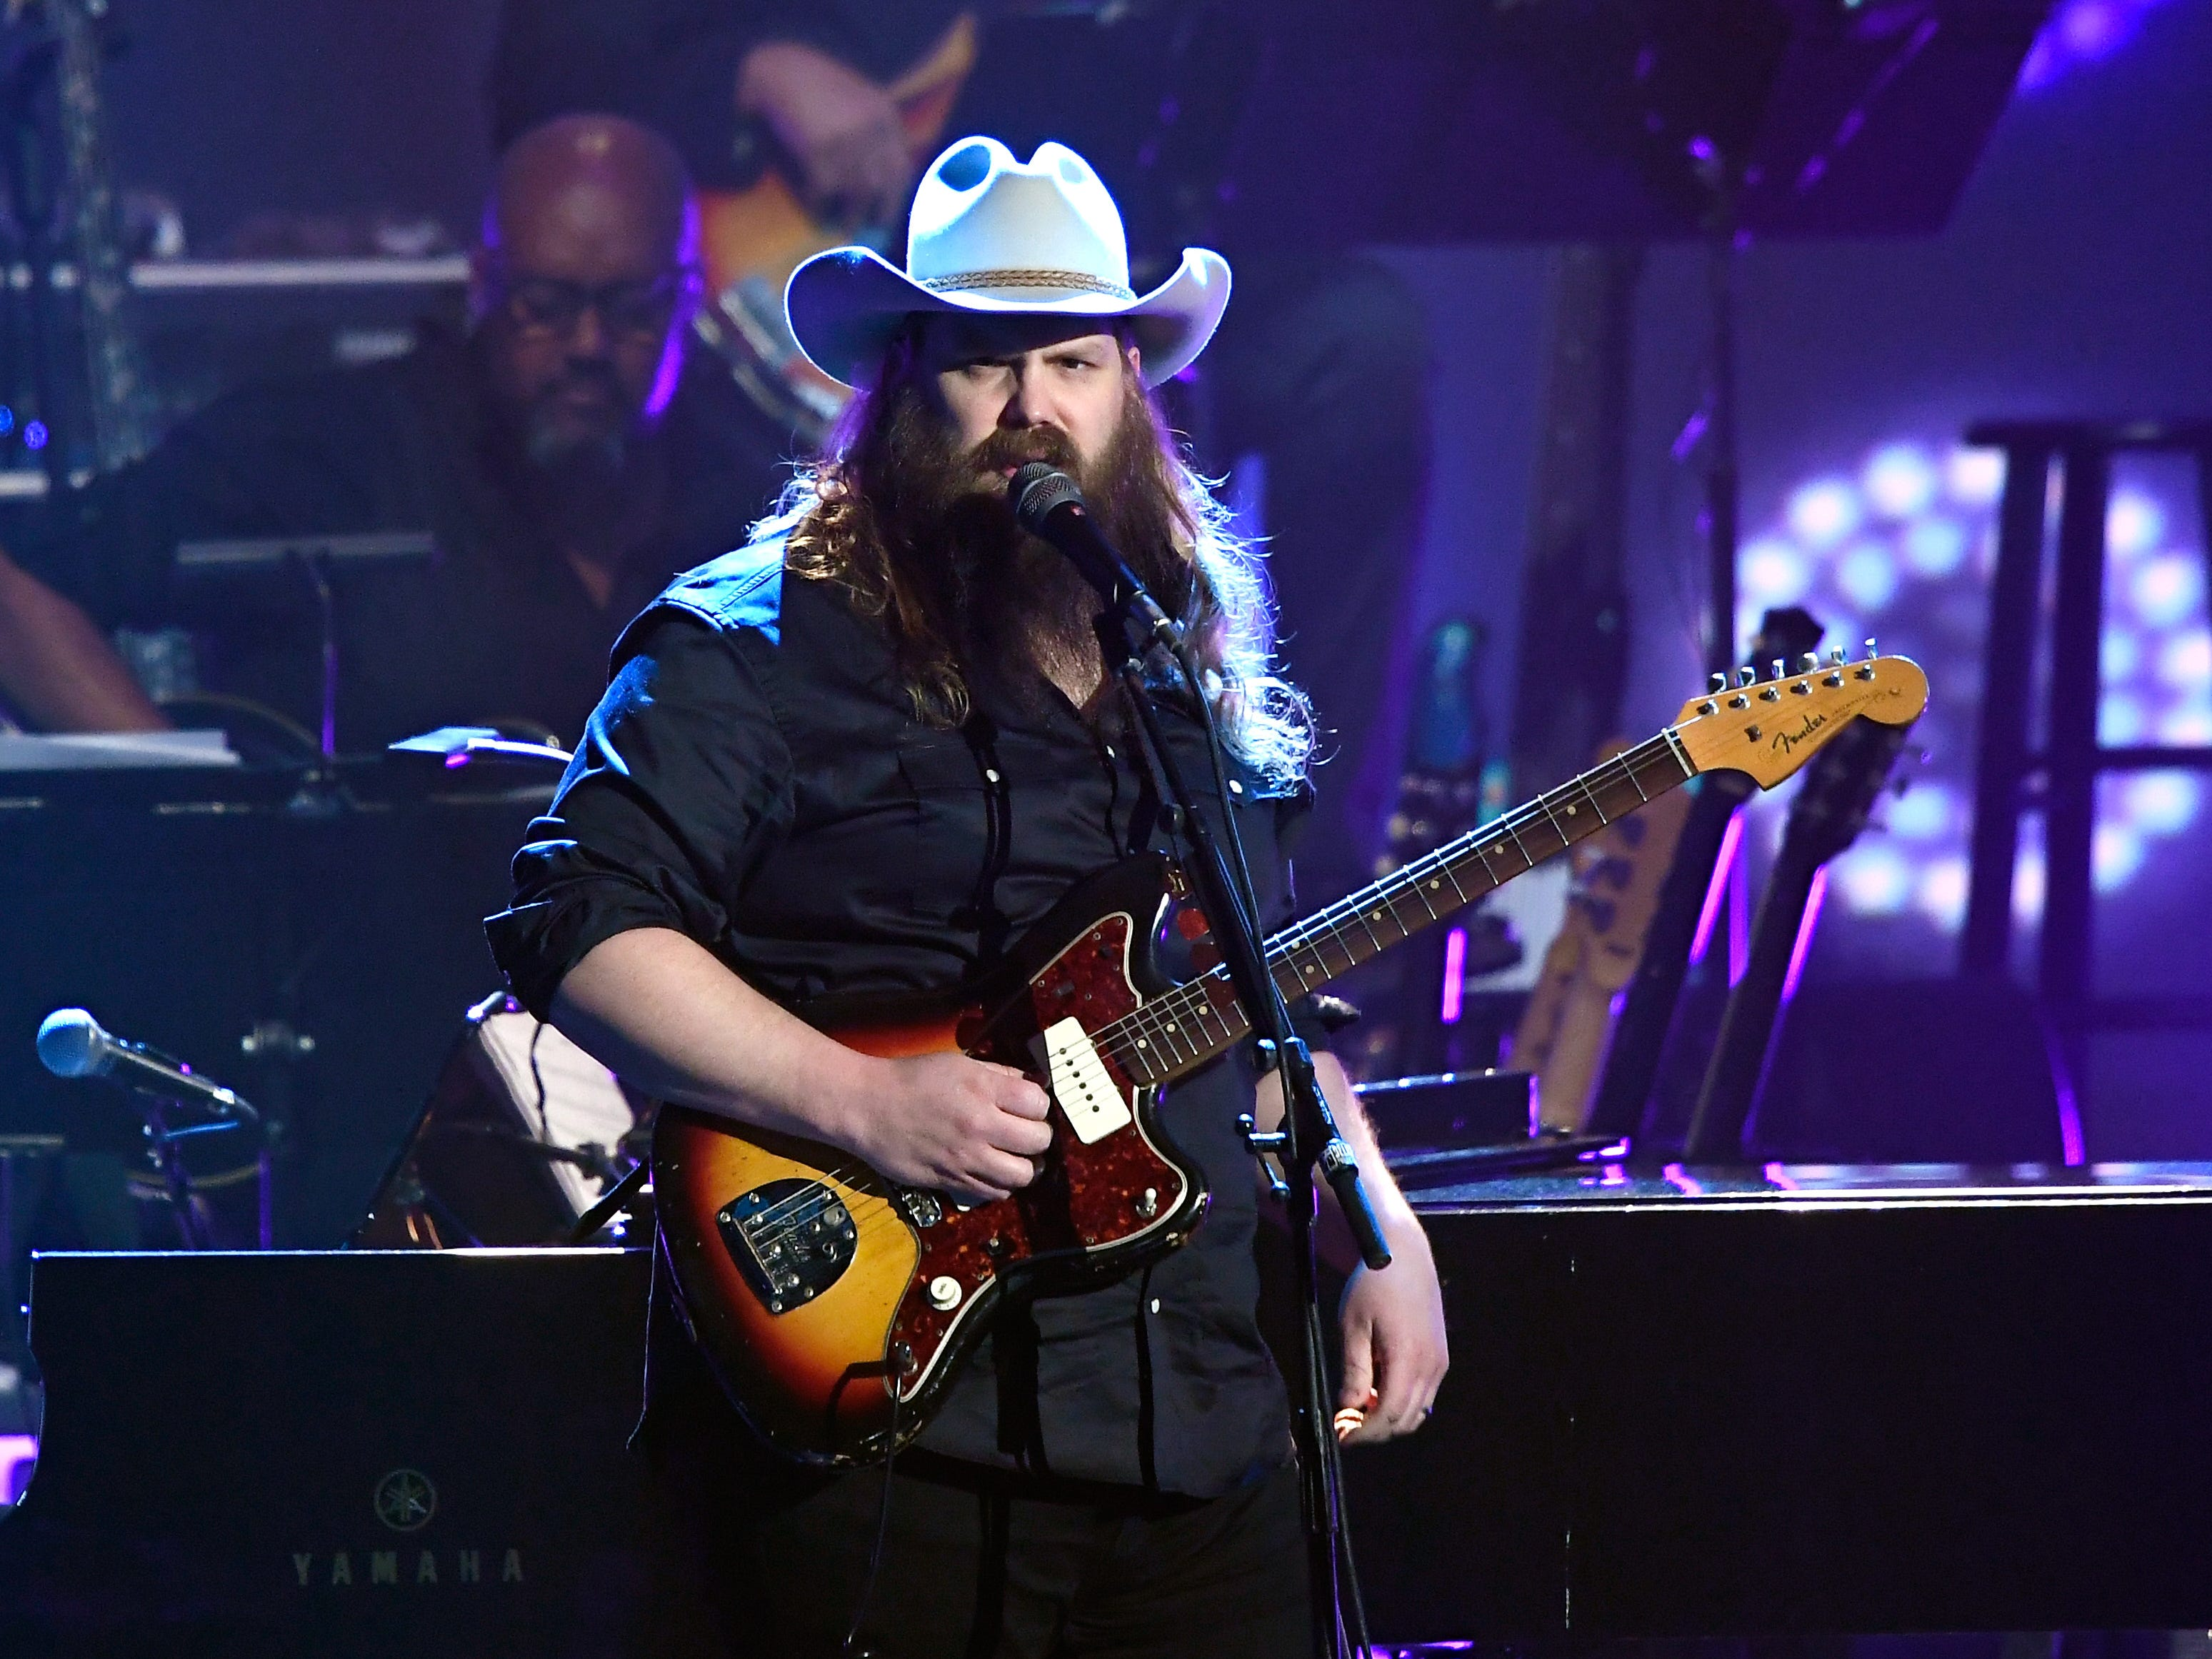 Chris Stapleton performs during MusiCares Person of the Year honoring Dolly Parton at Los Angeles Convention Center on February 8, 2019 in Los Angeles.